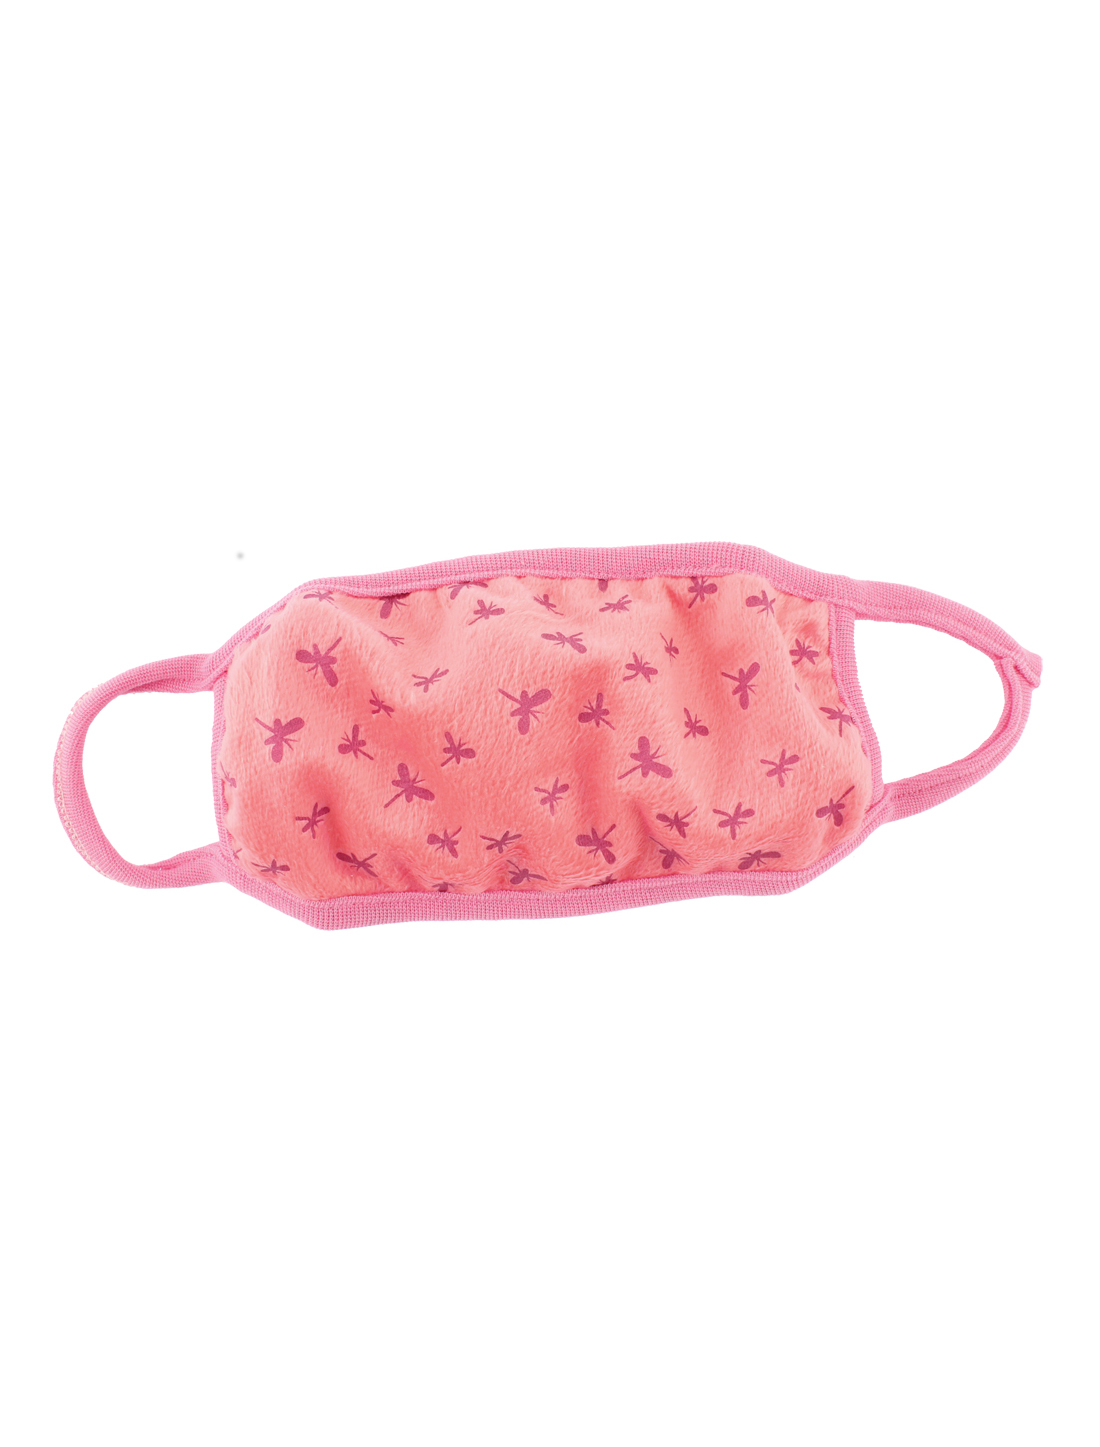 Woman Butterfly Pattern Mouth Mask Cover Respirator Protector Muffle Coral Pink